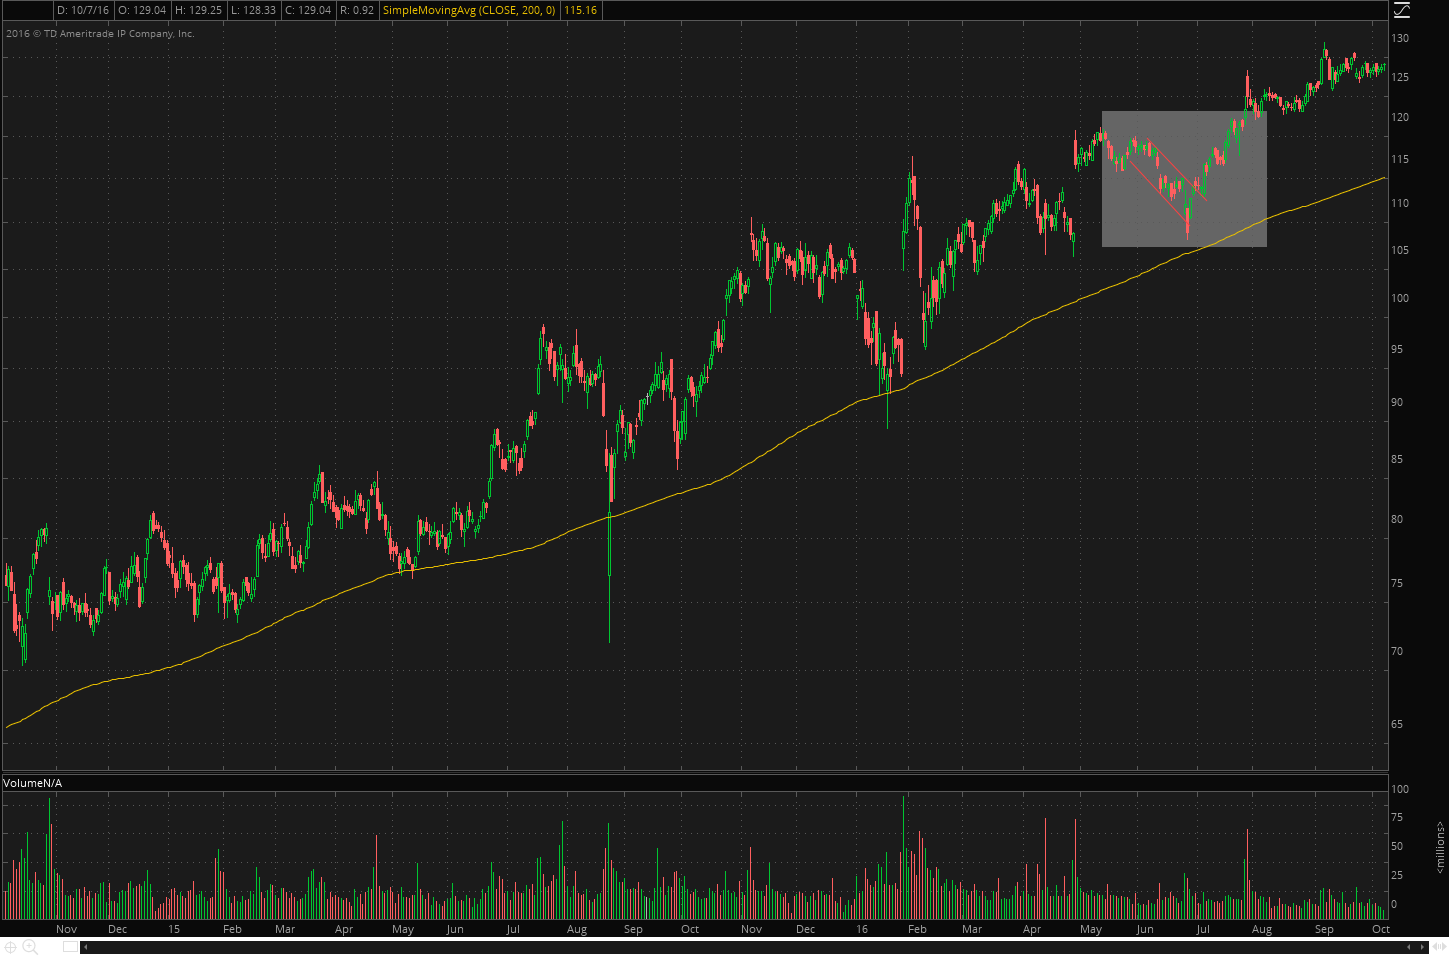 200-day moving average, uptrend